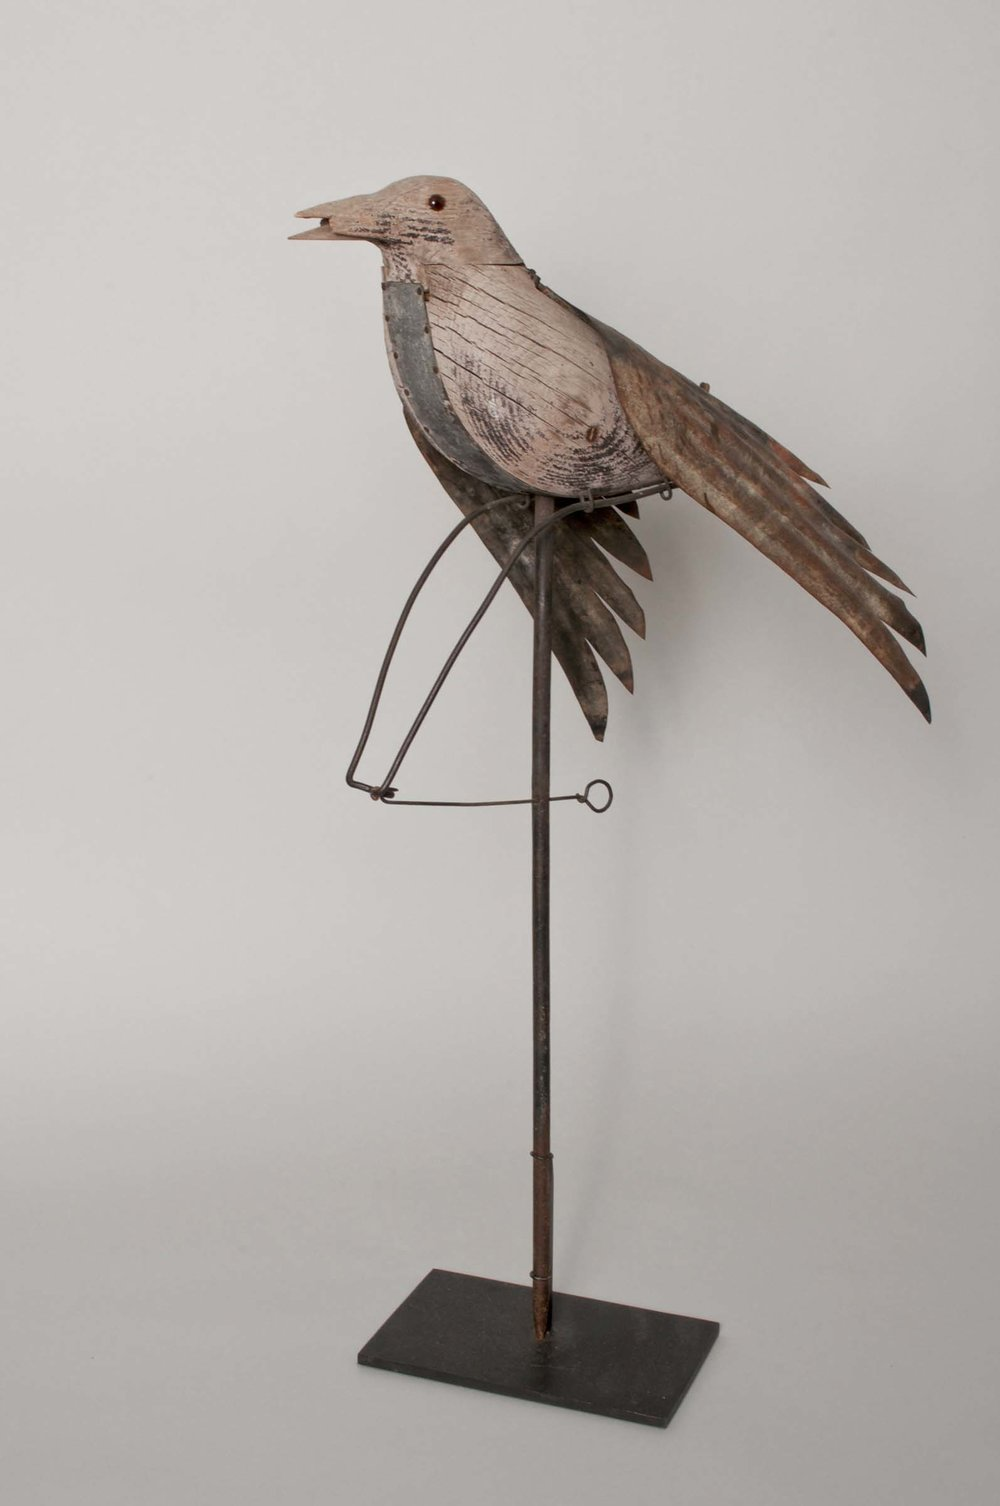 Charles Perdew III,  Mechanical Crow Decoy,  1930, wood, 26h x 11w x 17d in.